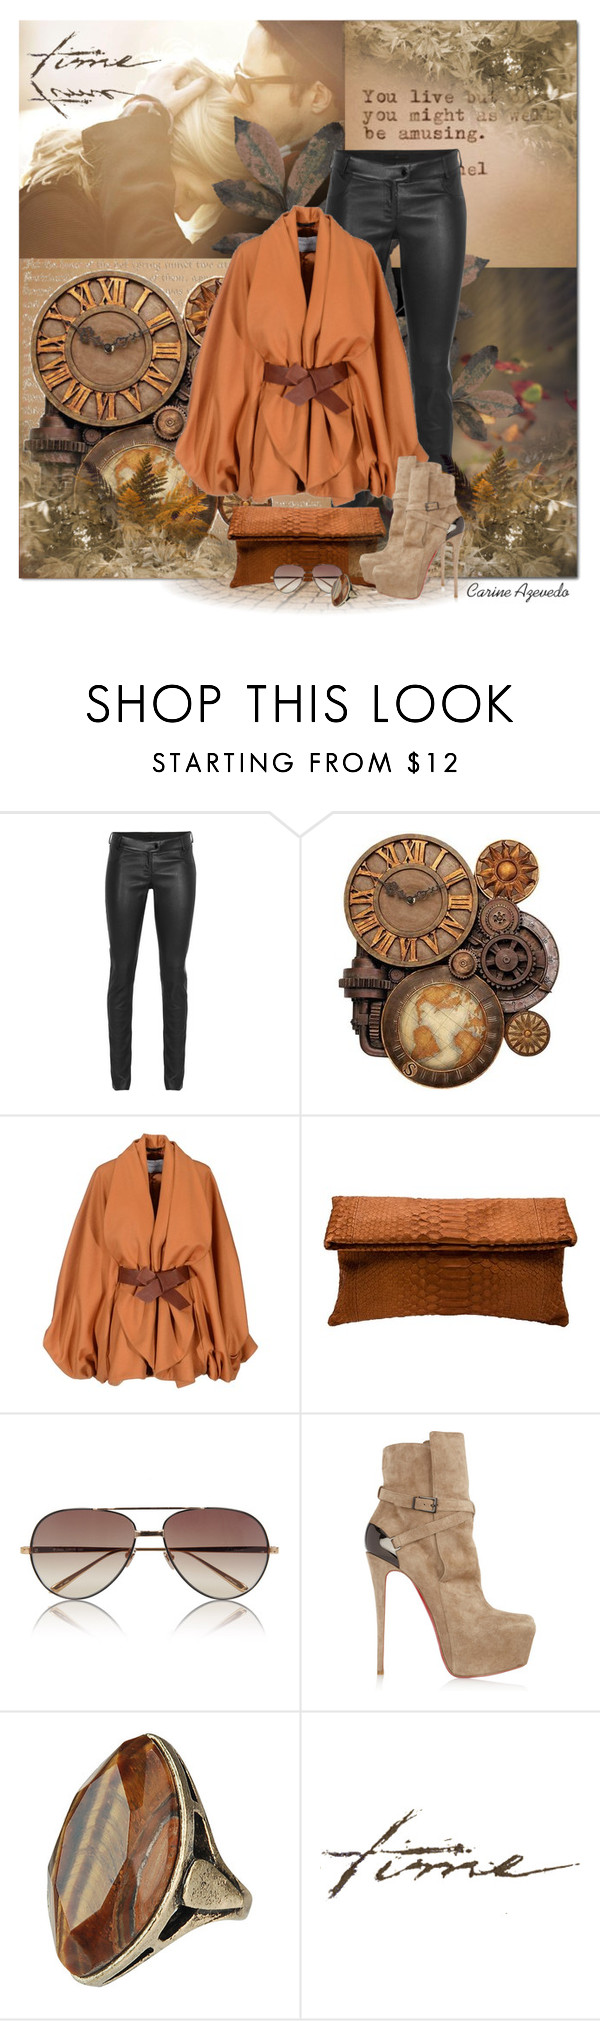 """""""Today... I'll try anything once, twice if I like it, three times to make sure (Mae West)"""" by carineazevedo ❤ liked on Polyvore featuring Chanel, SLY 010, WALL, Viktor & Rolf, Presmer, Linda Farrow and Christian Louboutin"""